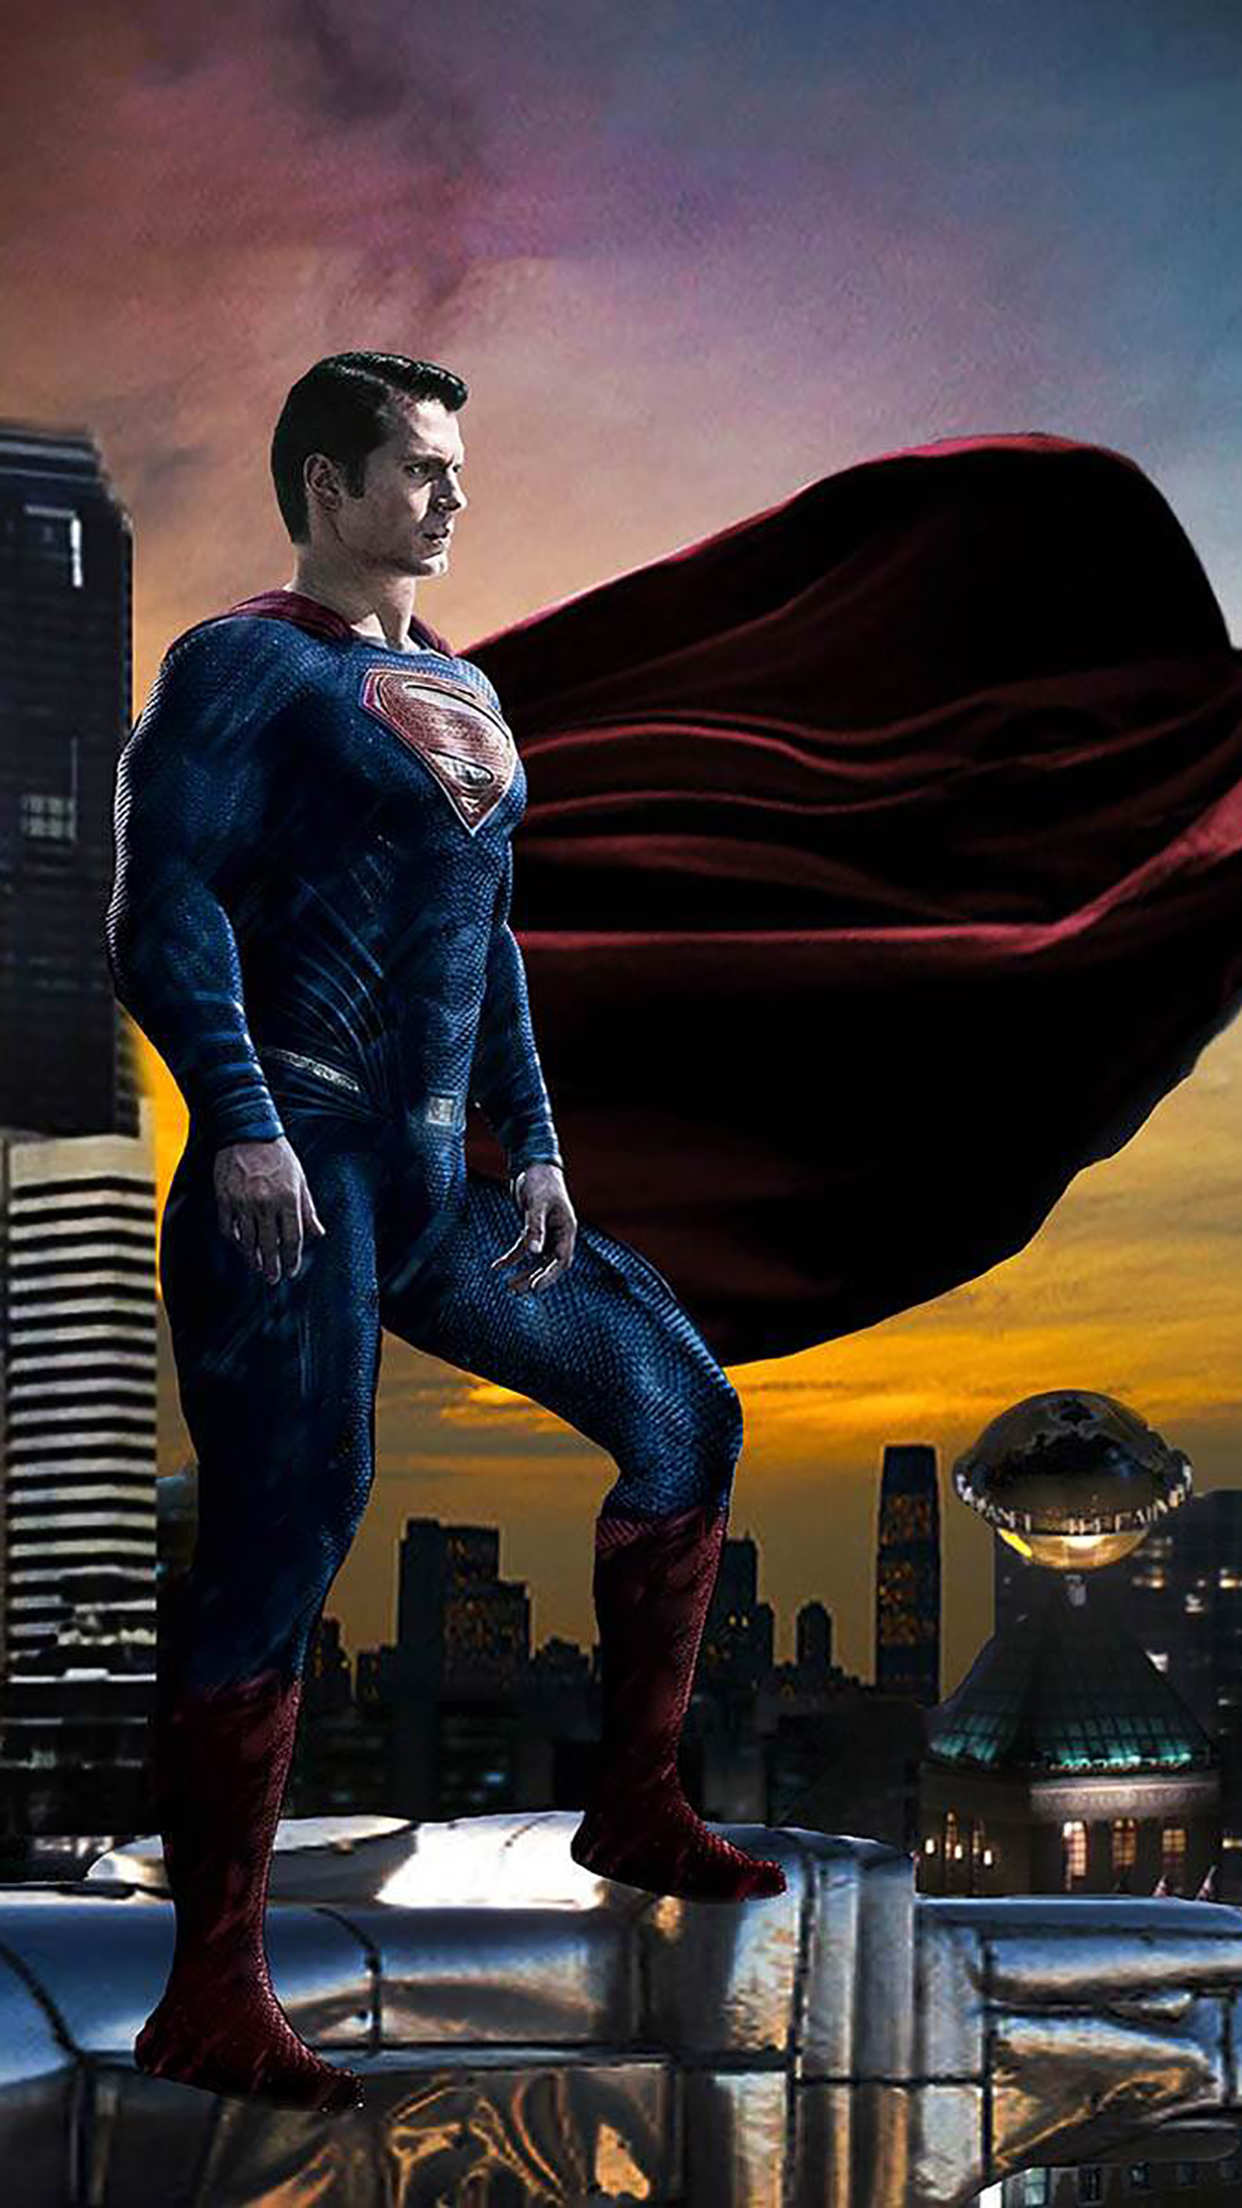 Superman Wallpaper For Iphone 6 Posted By Ethan Tremblay